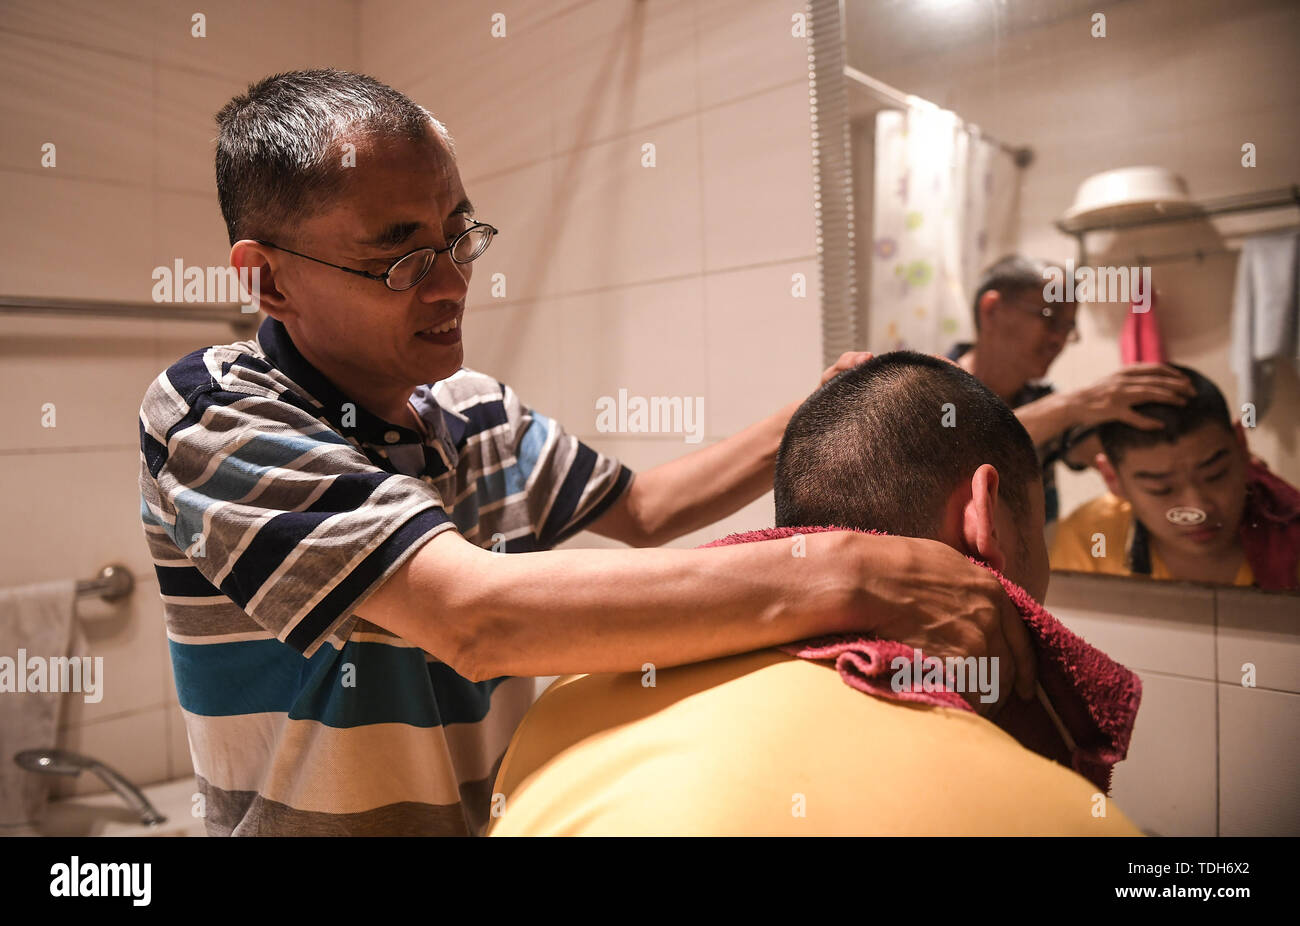 (190616) -- CHENGDU, June 16, 2019 (Xinhua) -- Guan Yongkang helps his son to wash face in Jinjiang District, Chengdu City, southwest China's Sichuan Province, June 11, 2019. Sun Hongwei, the son of 59-year-old Guan Yongkang, was born with cerebral palsy in 1995 and suffered from amyotrophy.  Sun ever received professional rehabilitation training in training courses organized by Chengdu Qingyang Federation of Disabled Persons in 2004. Later he stopped the course because of overage. In 2015, his father Guan decided to take him to practice in the gym. After a period of searching, a gym accepted  - Stock Image